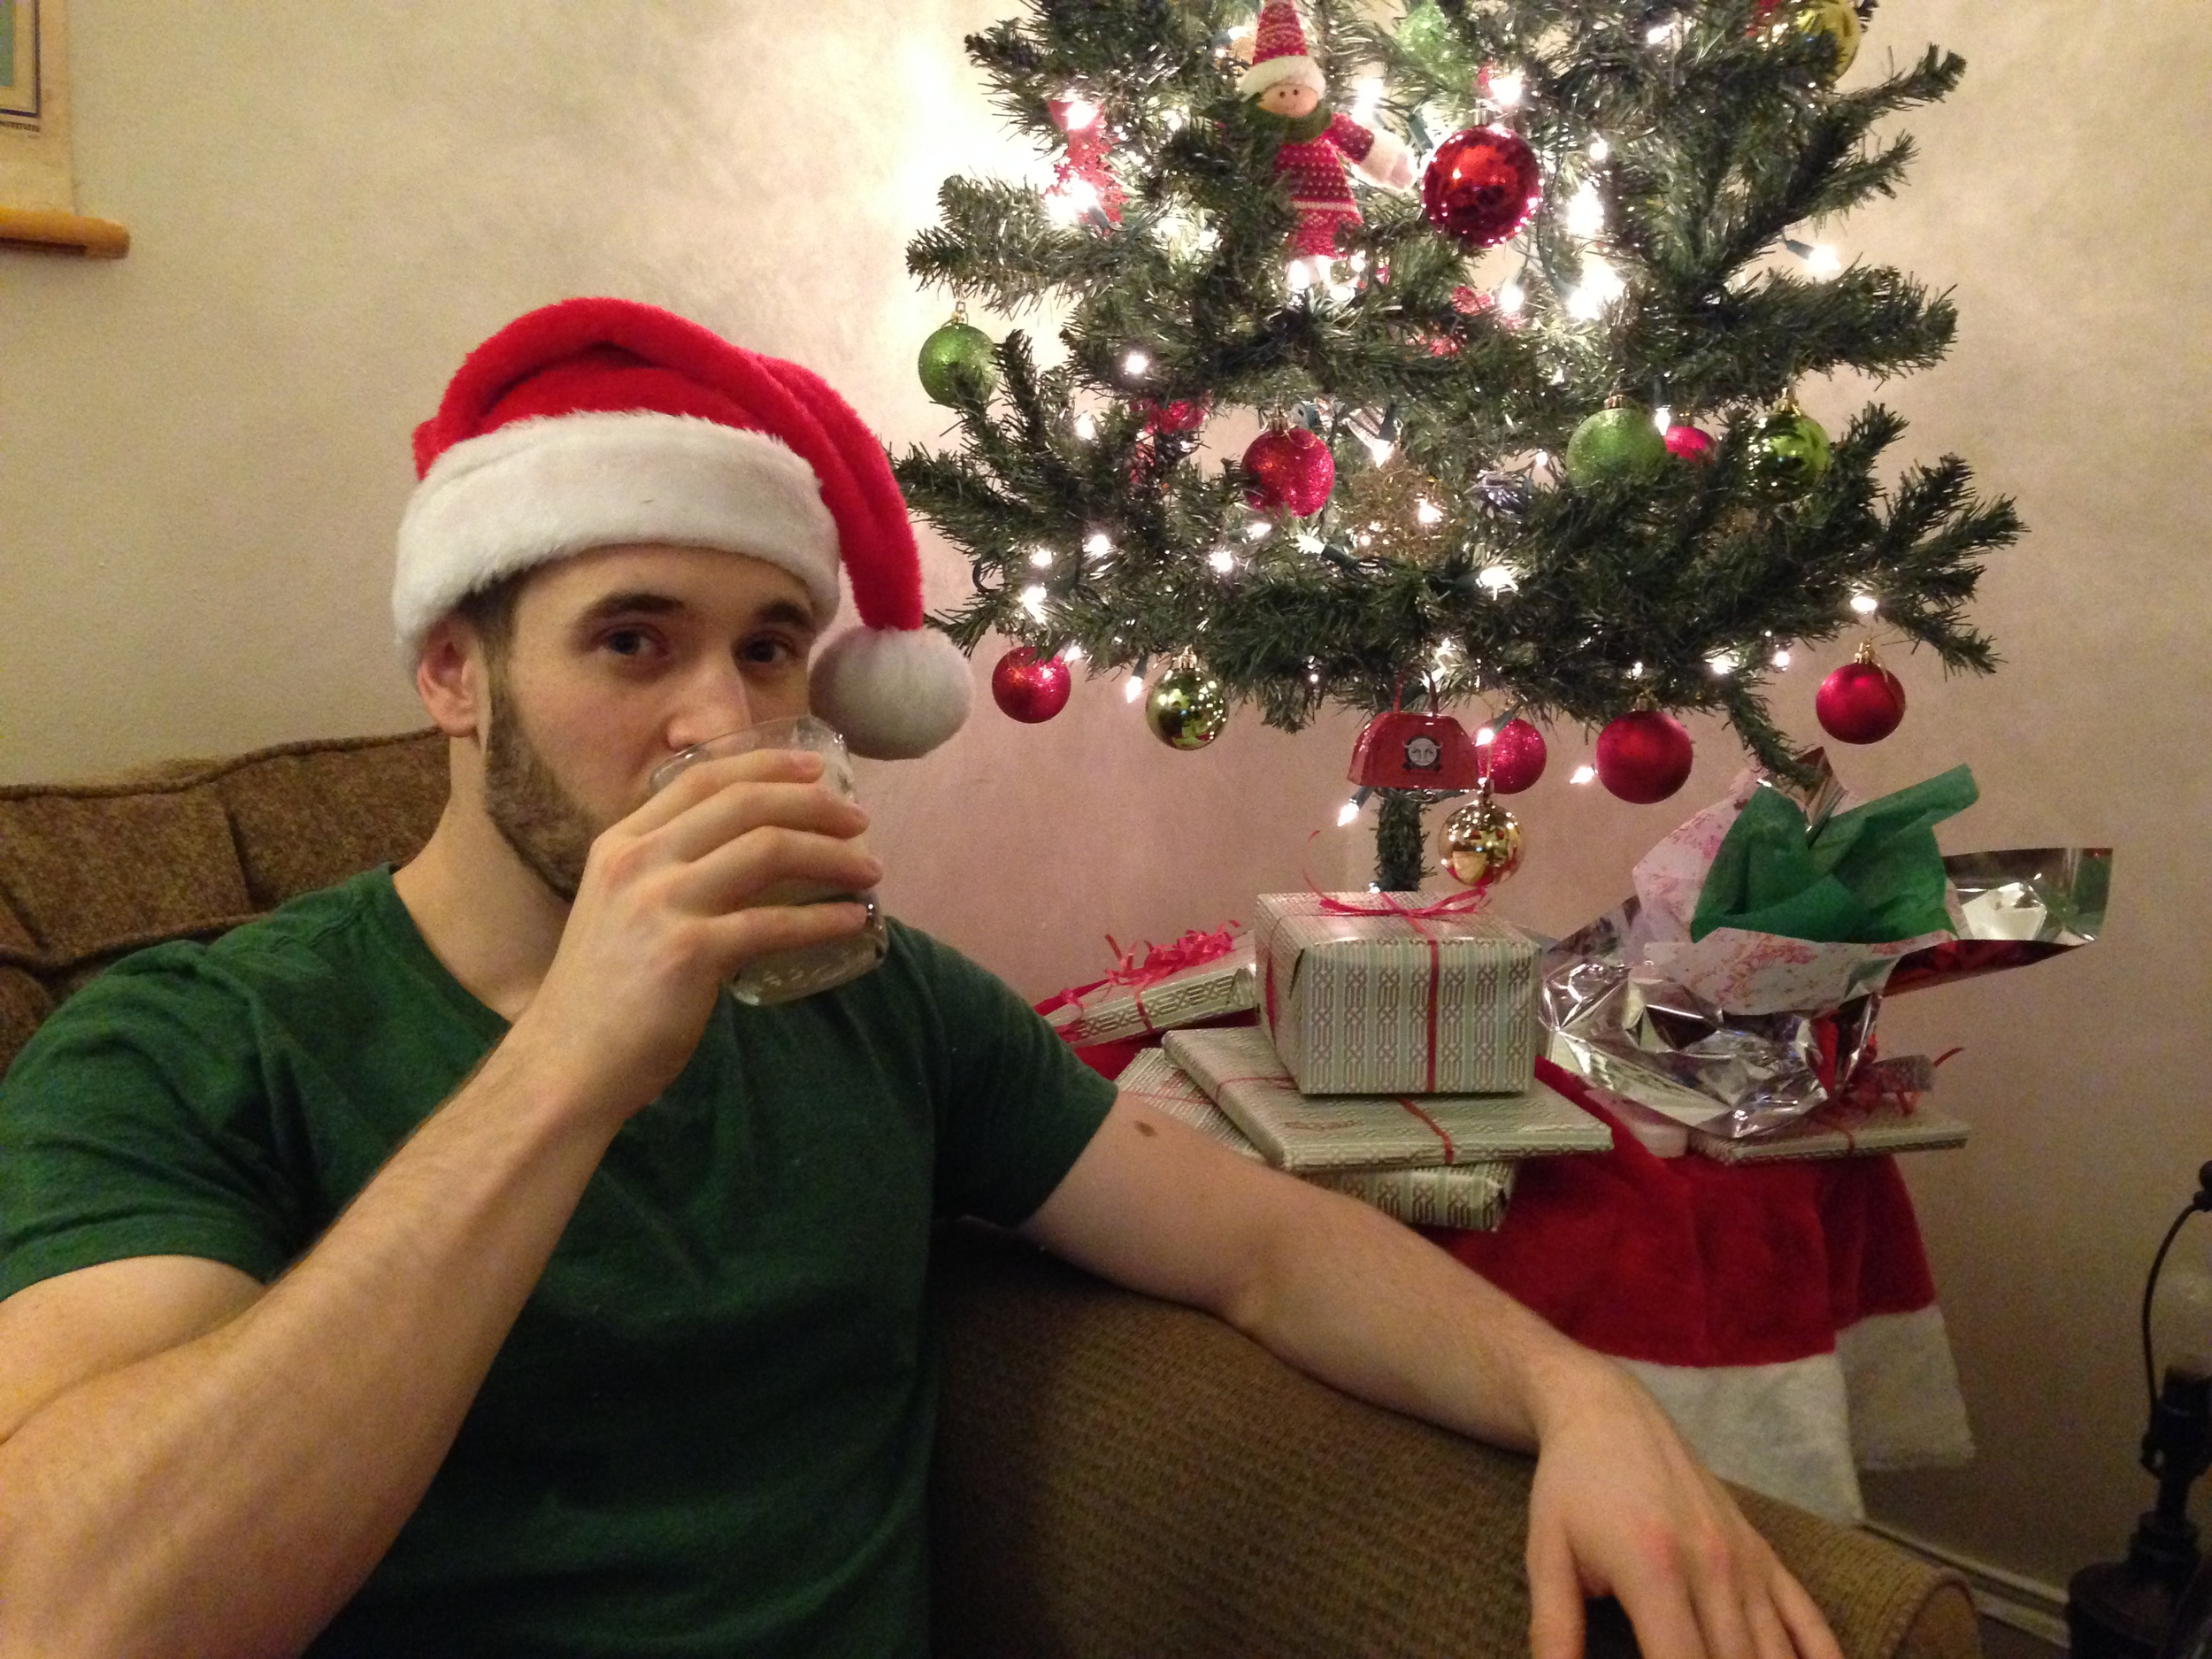 Sipping eggnog,giddy with Christmas cheer.